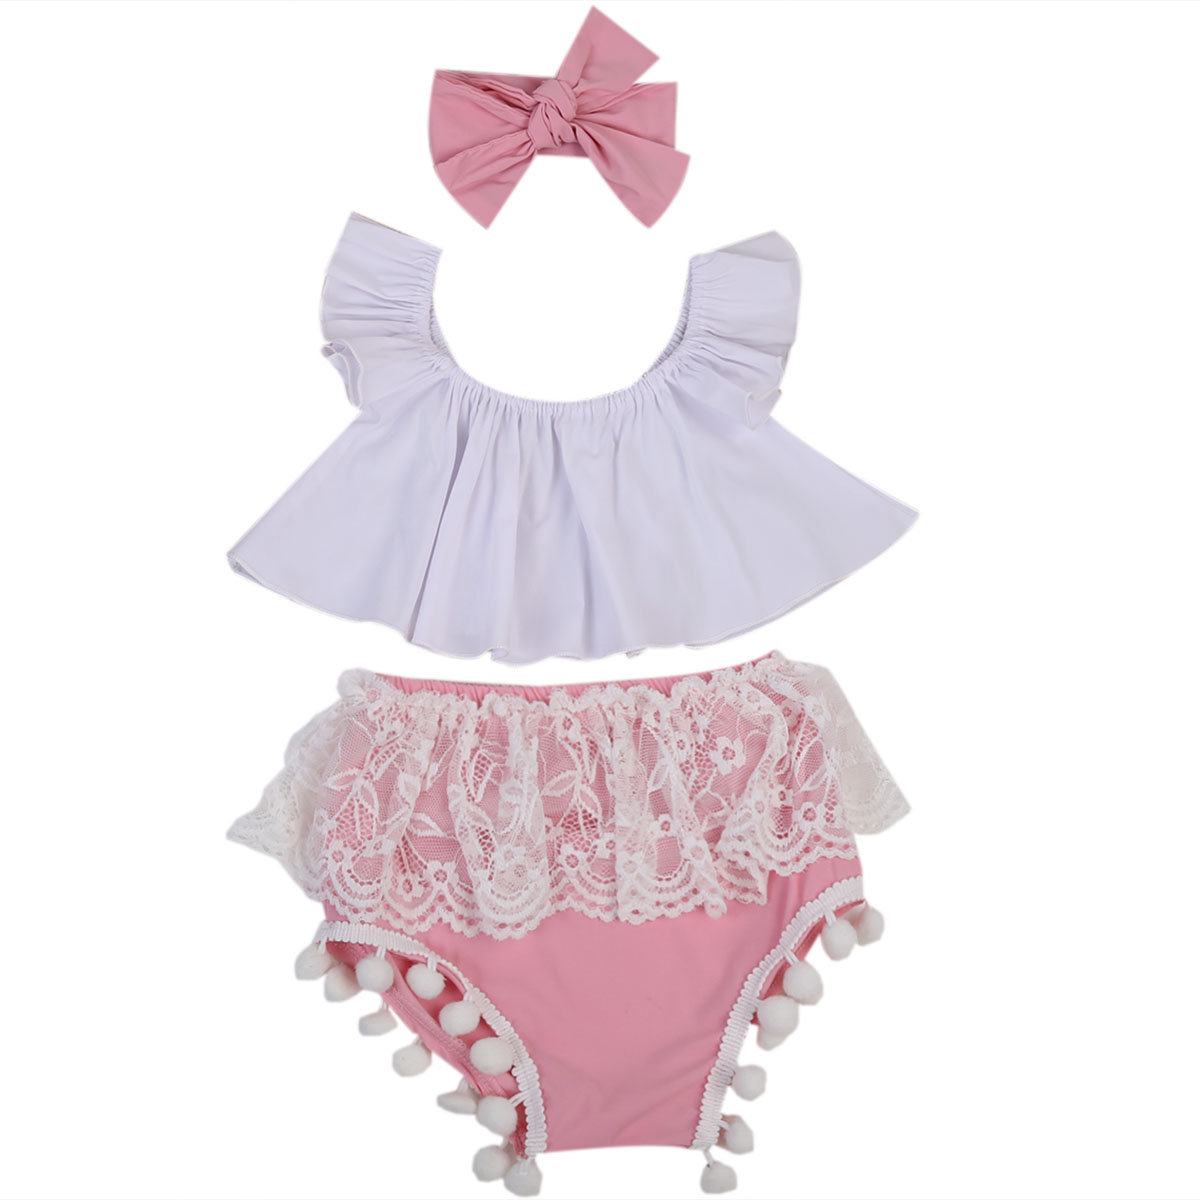 Baby Girl Clothes Set 2017 Hot Sale 3pcs Sweet Infant Kids Baby Girls Clothes RuffleTops+Lace Tassel Pants Outfits Set 3pcs set newborn infant baby boy girl clothes 2017 summer short sleeve leopard floral romper bodysuit headband shoes outfits